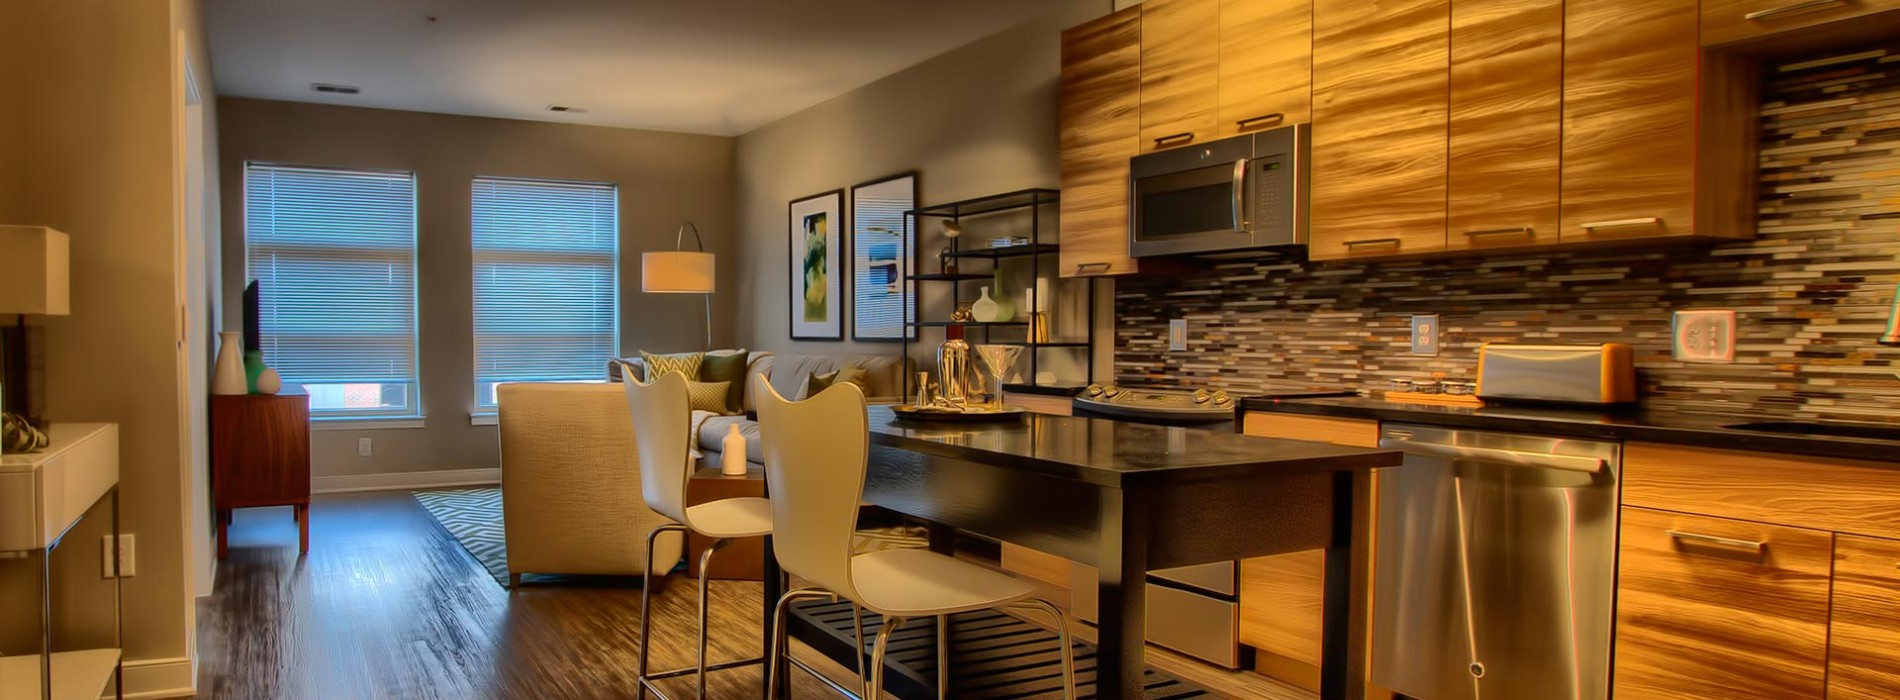 dc-apartments-near-grocery-stores-swift-at-petworth-metro-apartments